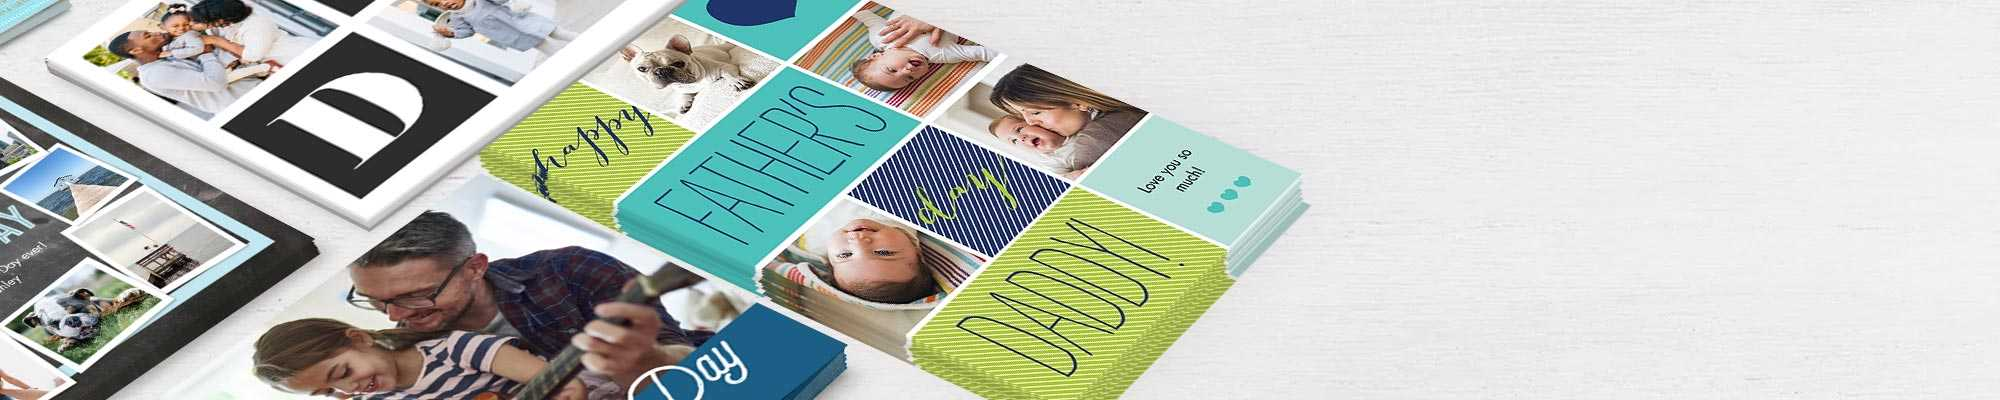 Photo Cards For all special people and occasions in your life, cards send the perfect message.